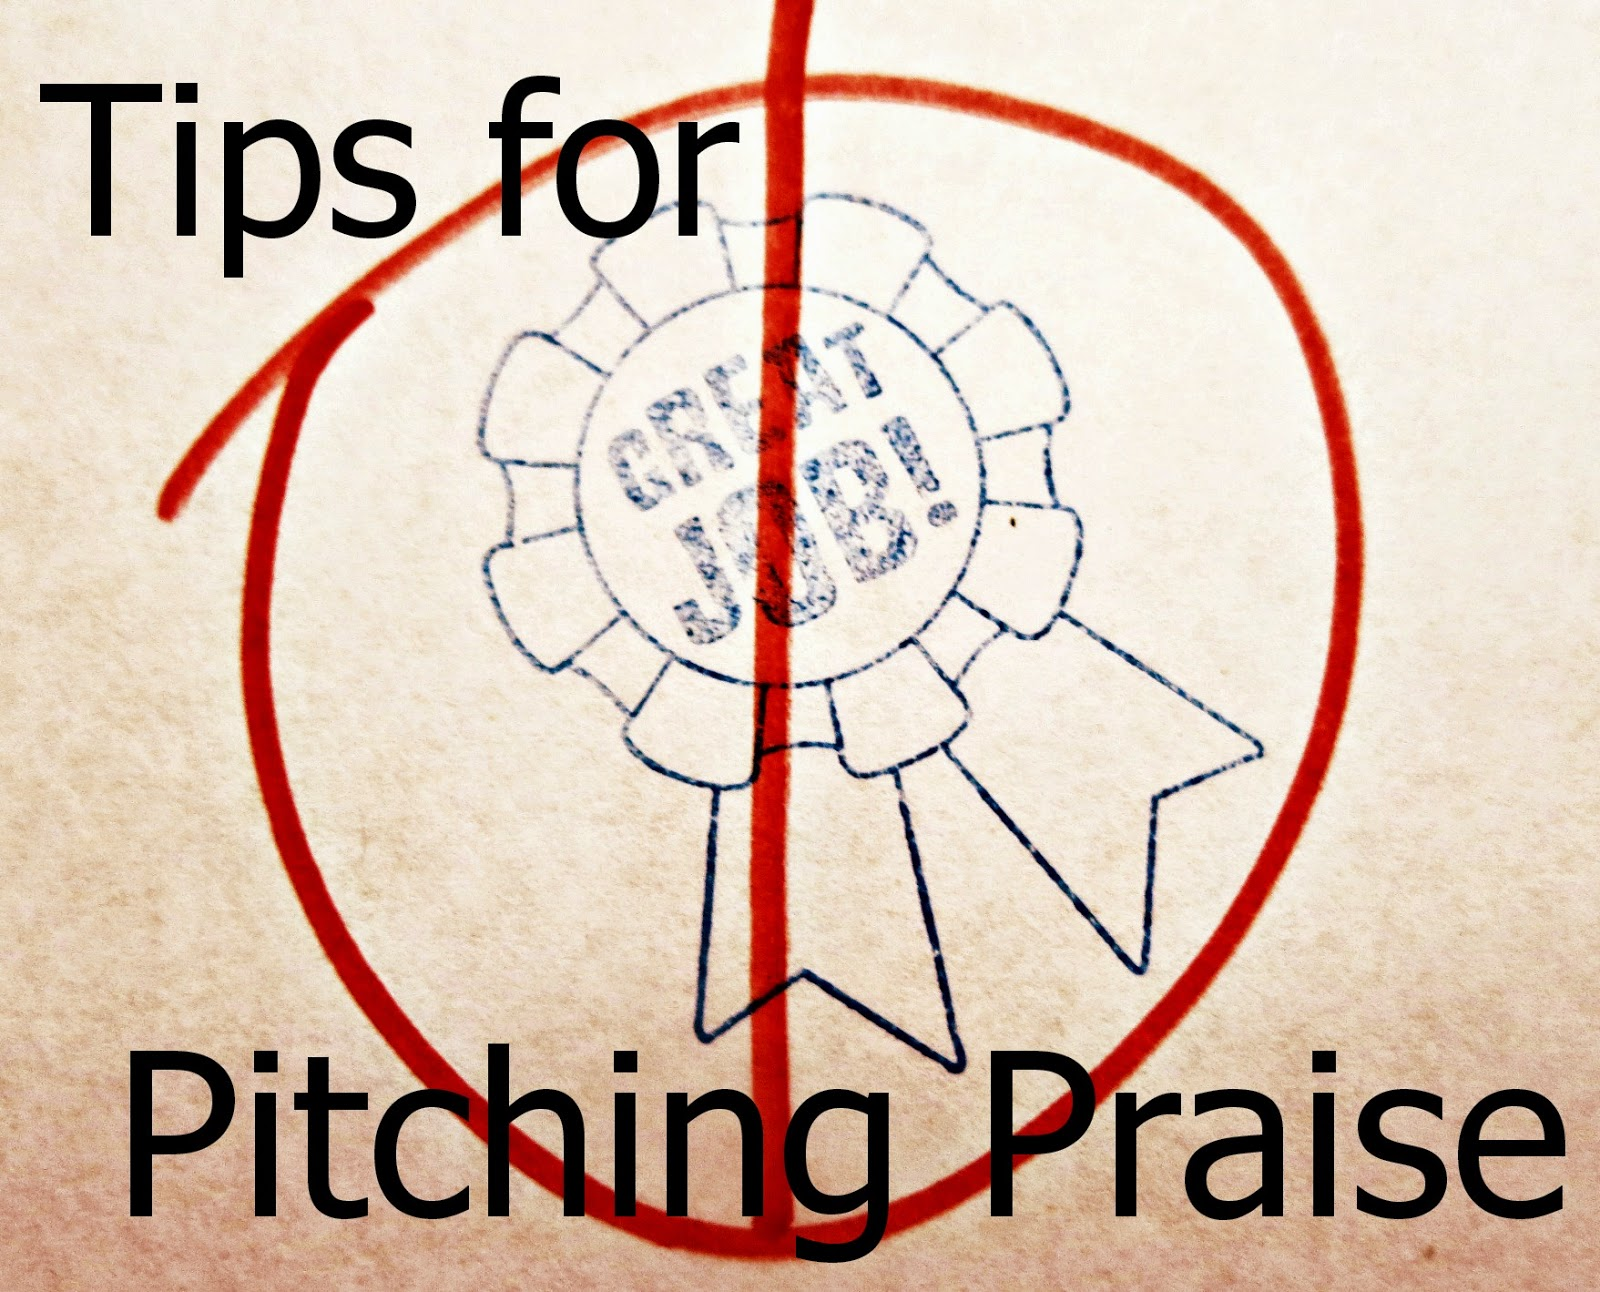 Tips for Pitching Praise